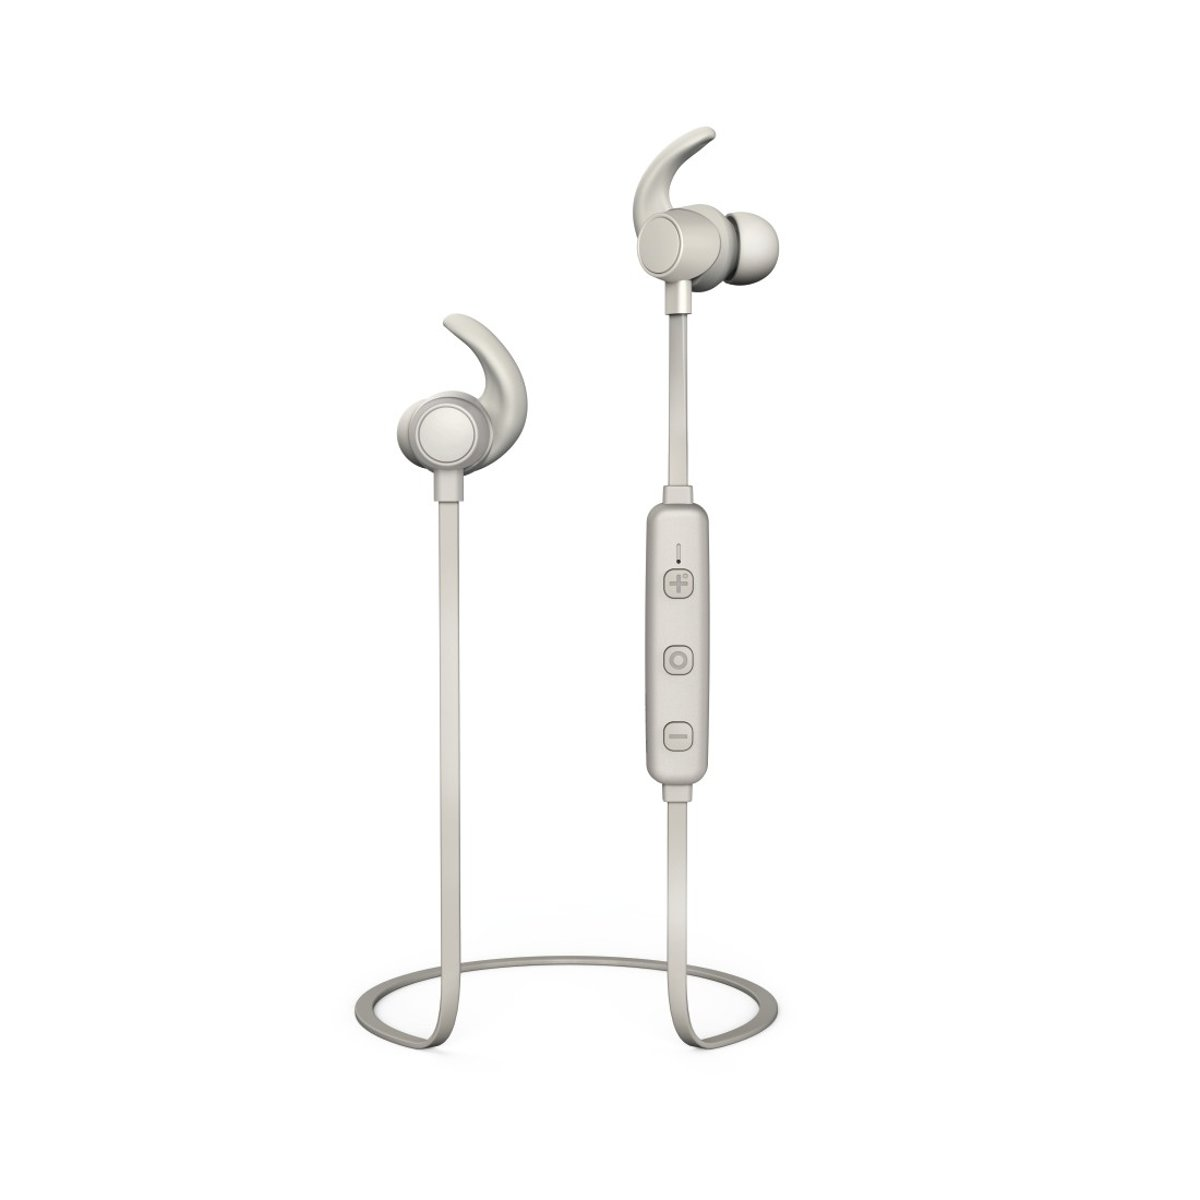 Thomson WEAR7208GR Bluetooth®-koptelefoon, in-ear, microfoon, ear-hook, grijs kopen